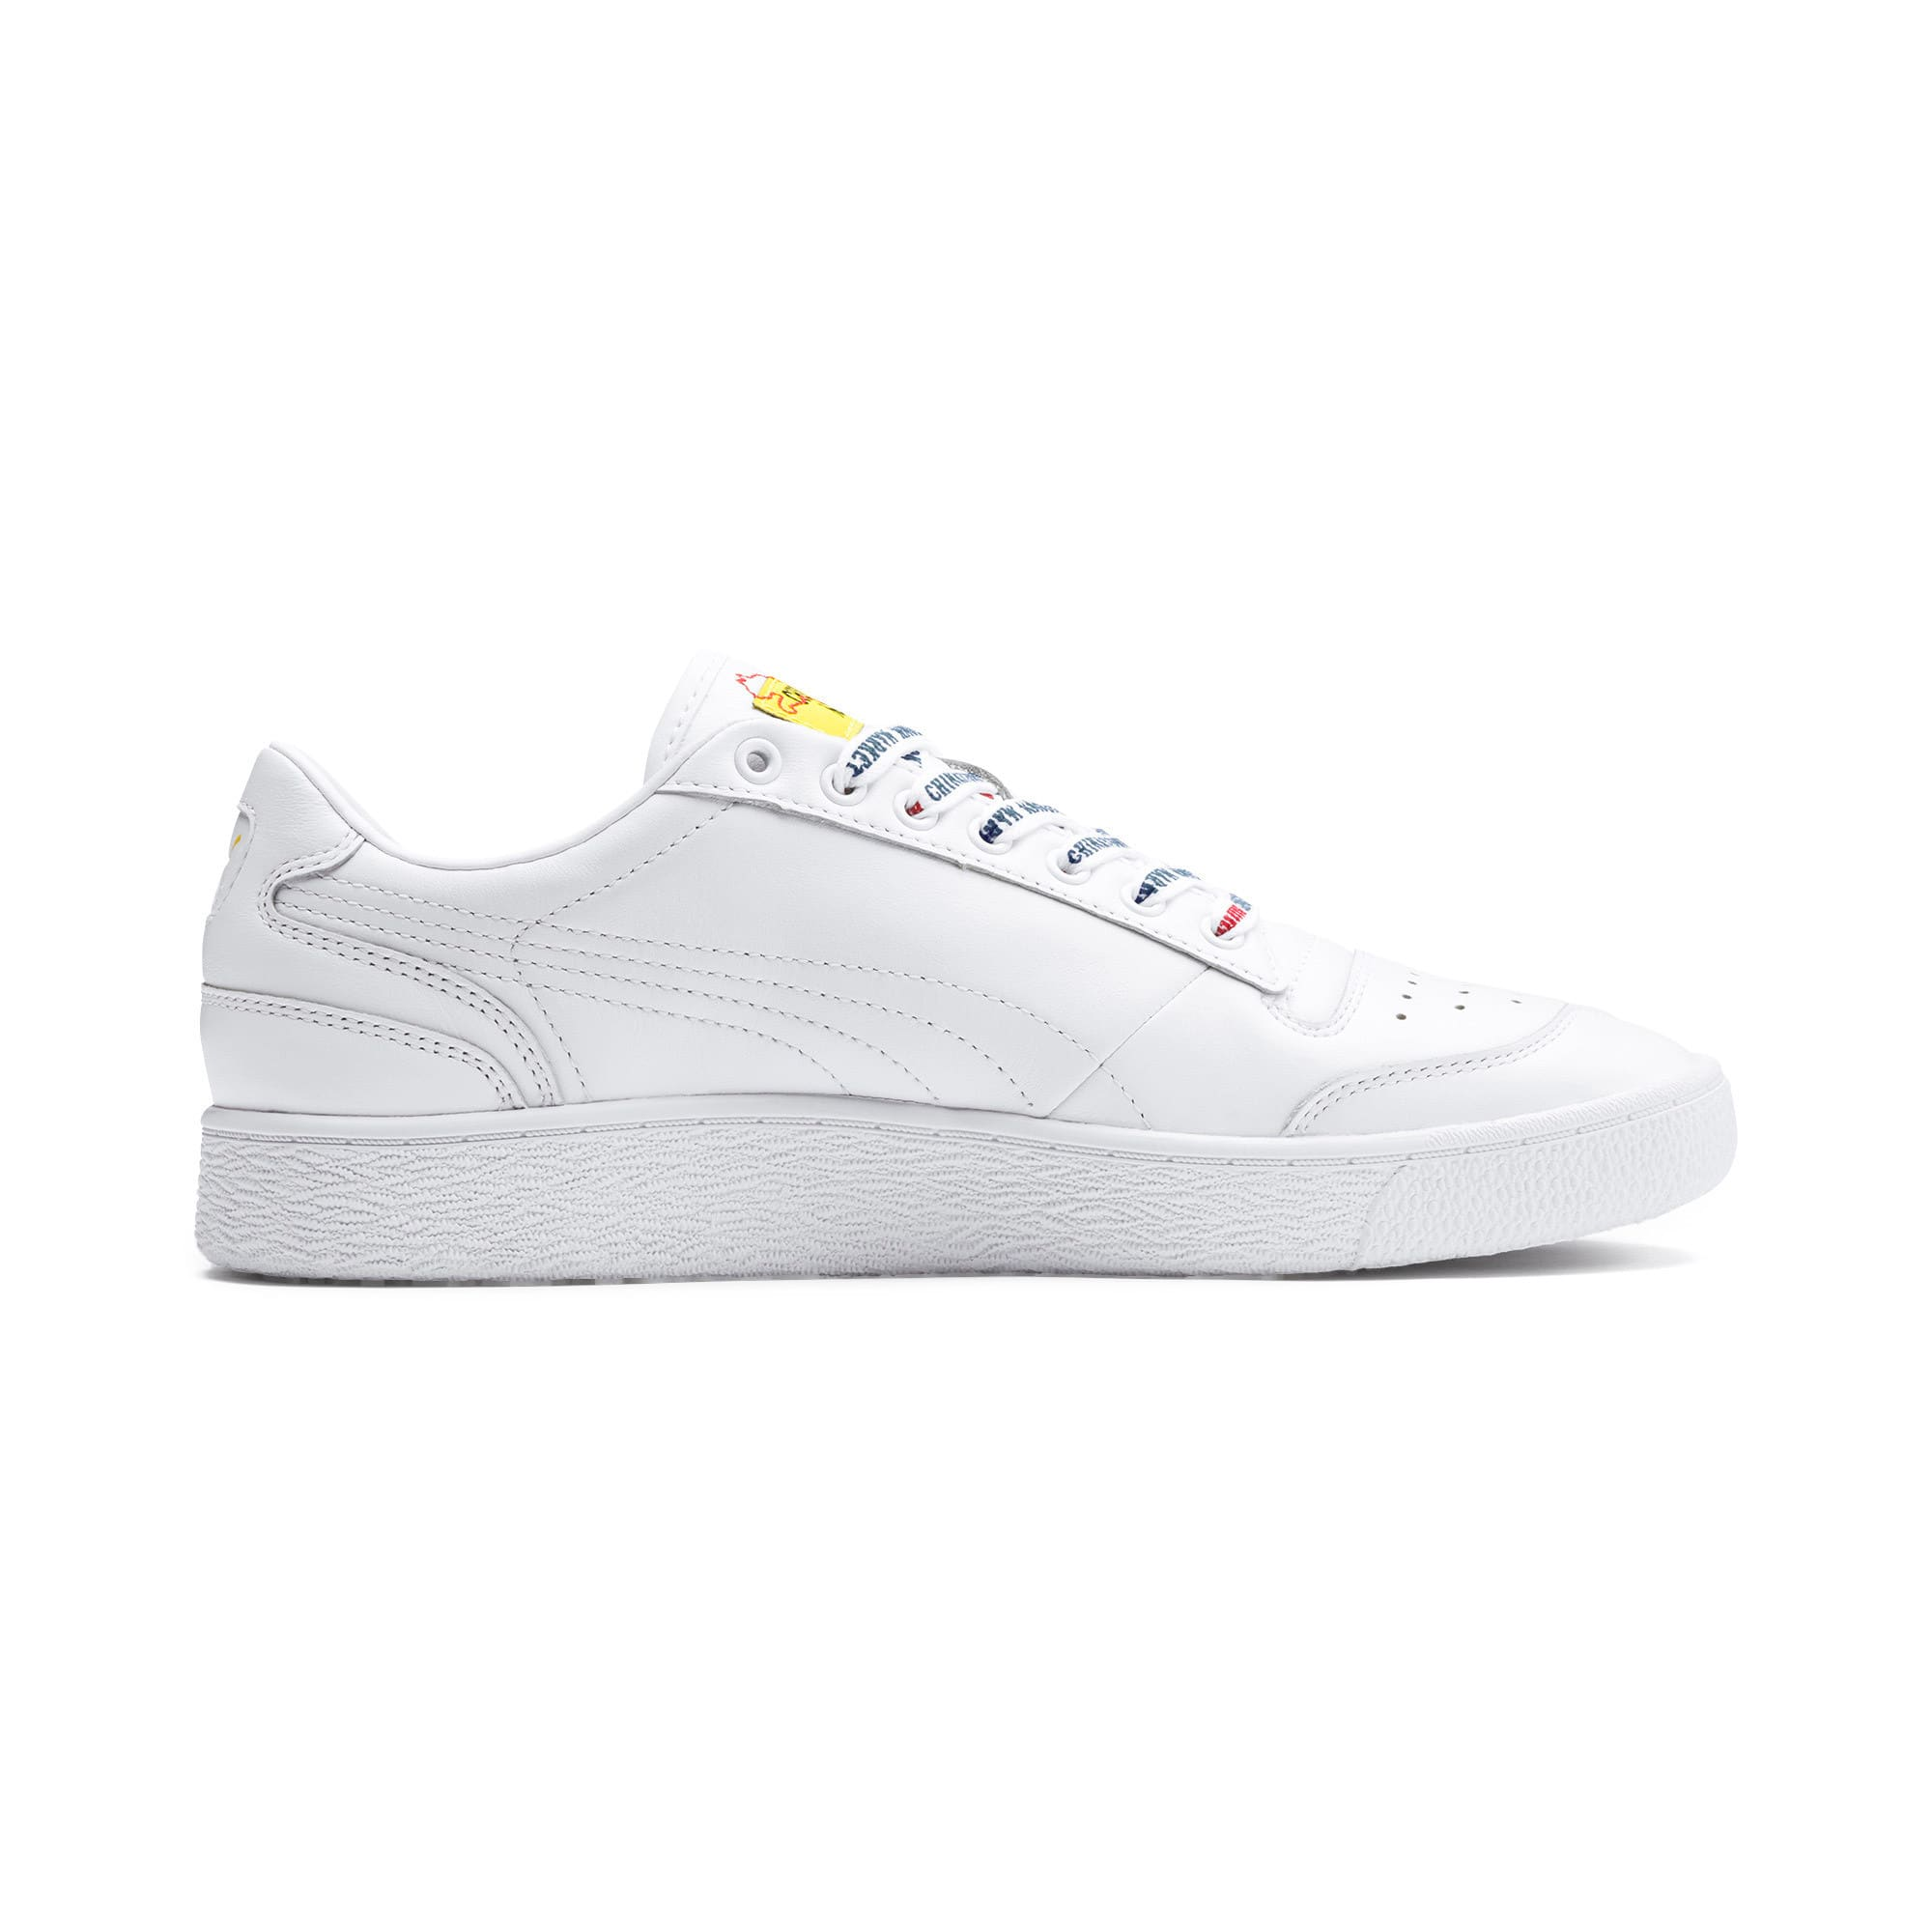 Thumbnail 5 of PUMA x CHINATOWN MARKET ラルフ サンプソン ローカット スニーカー, Puma White, medium-JPN